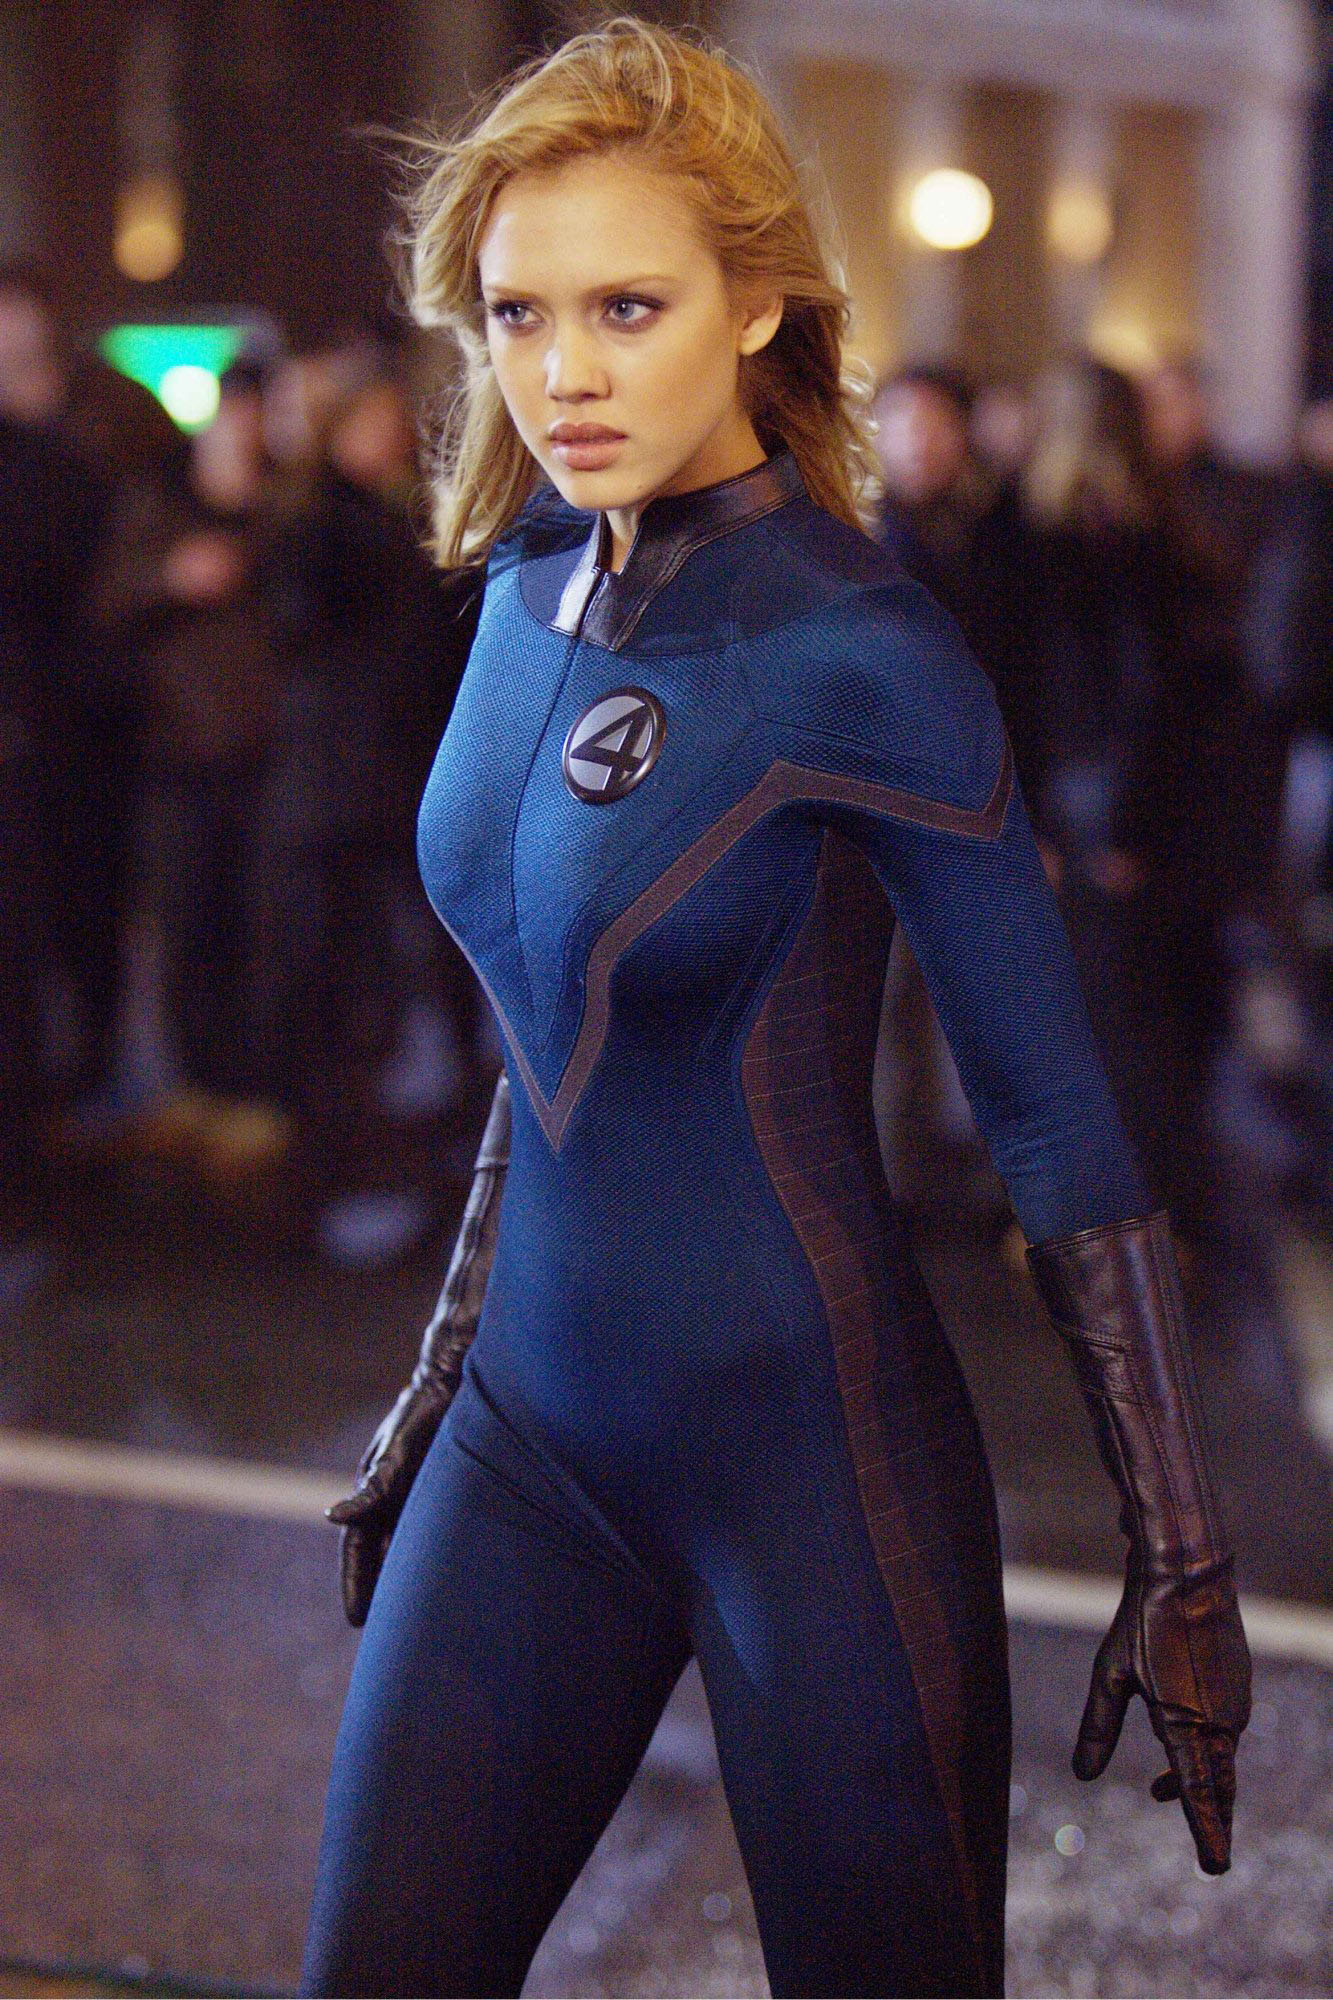 Susan Storm The Invisible Woman - Female Ass-Kickers Photo ...